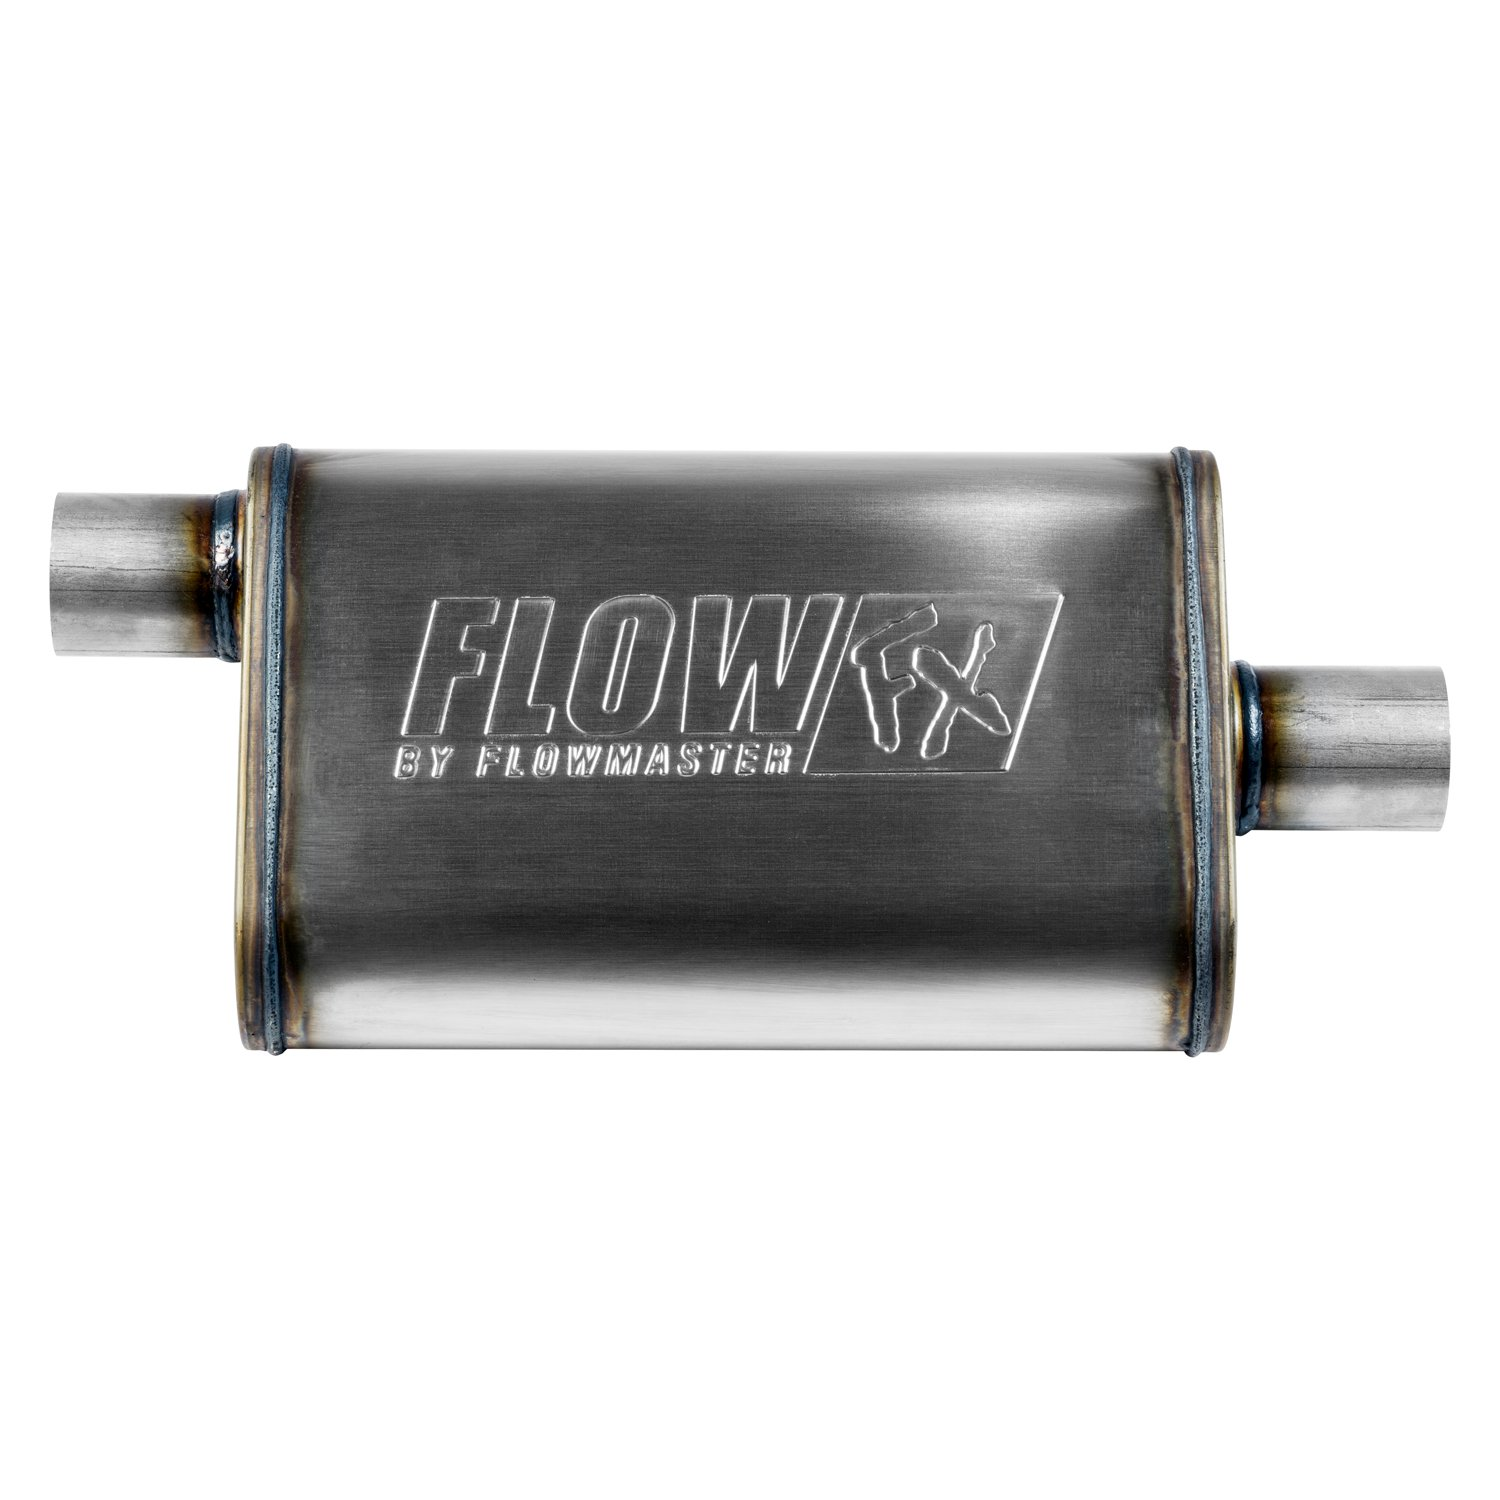 Inlet //Outlet Flowmaster FX Universal Stainless Steel Round Body Muffler 2.25in